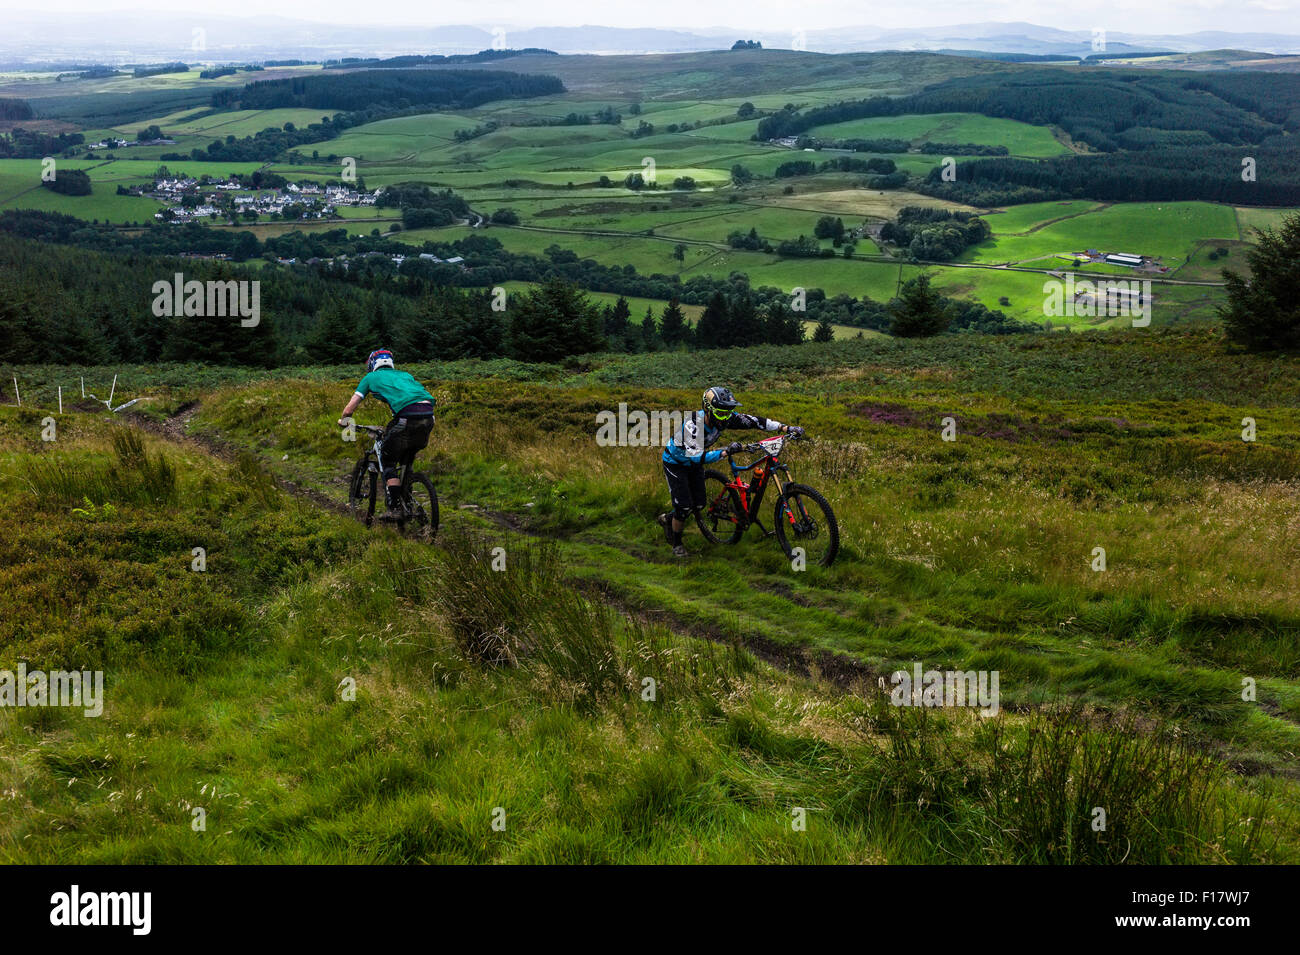 Ae Forest, Dumfries, Scotland, UK. 29th August 2015. Mountain bikers take part in the UK Gravity Enduro Series race - Stock Image